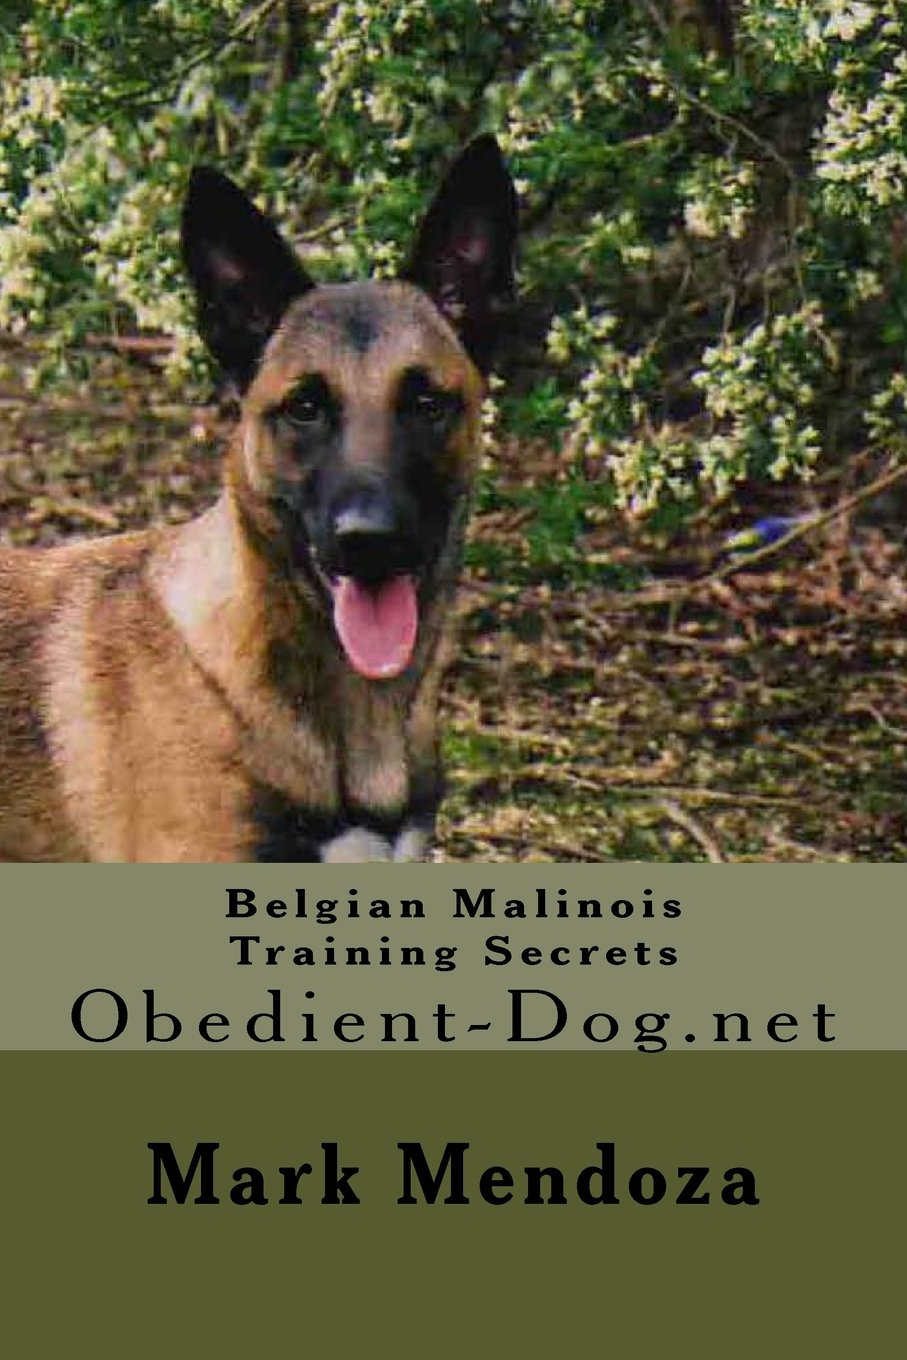 Belgian Malinois Training Secrets: Obedient-Dog.net